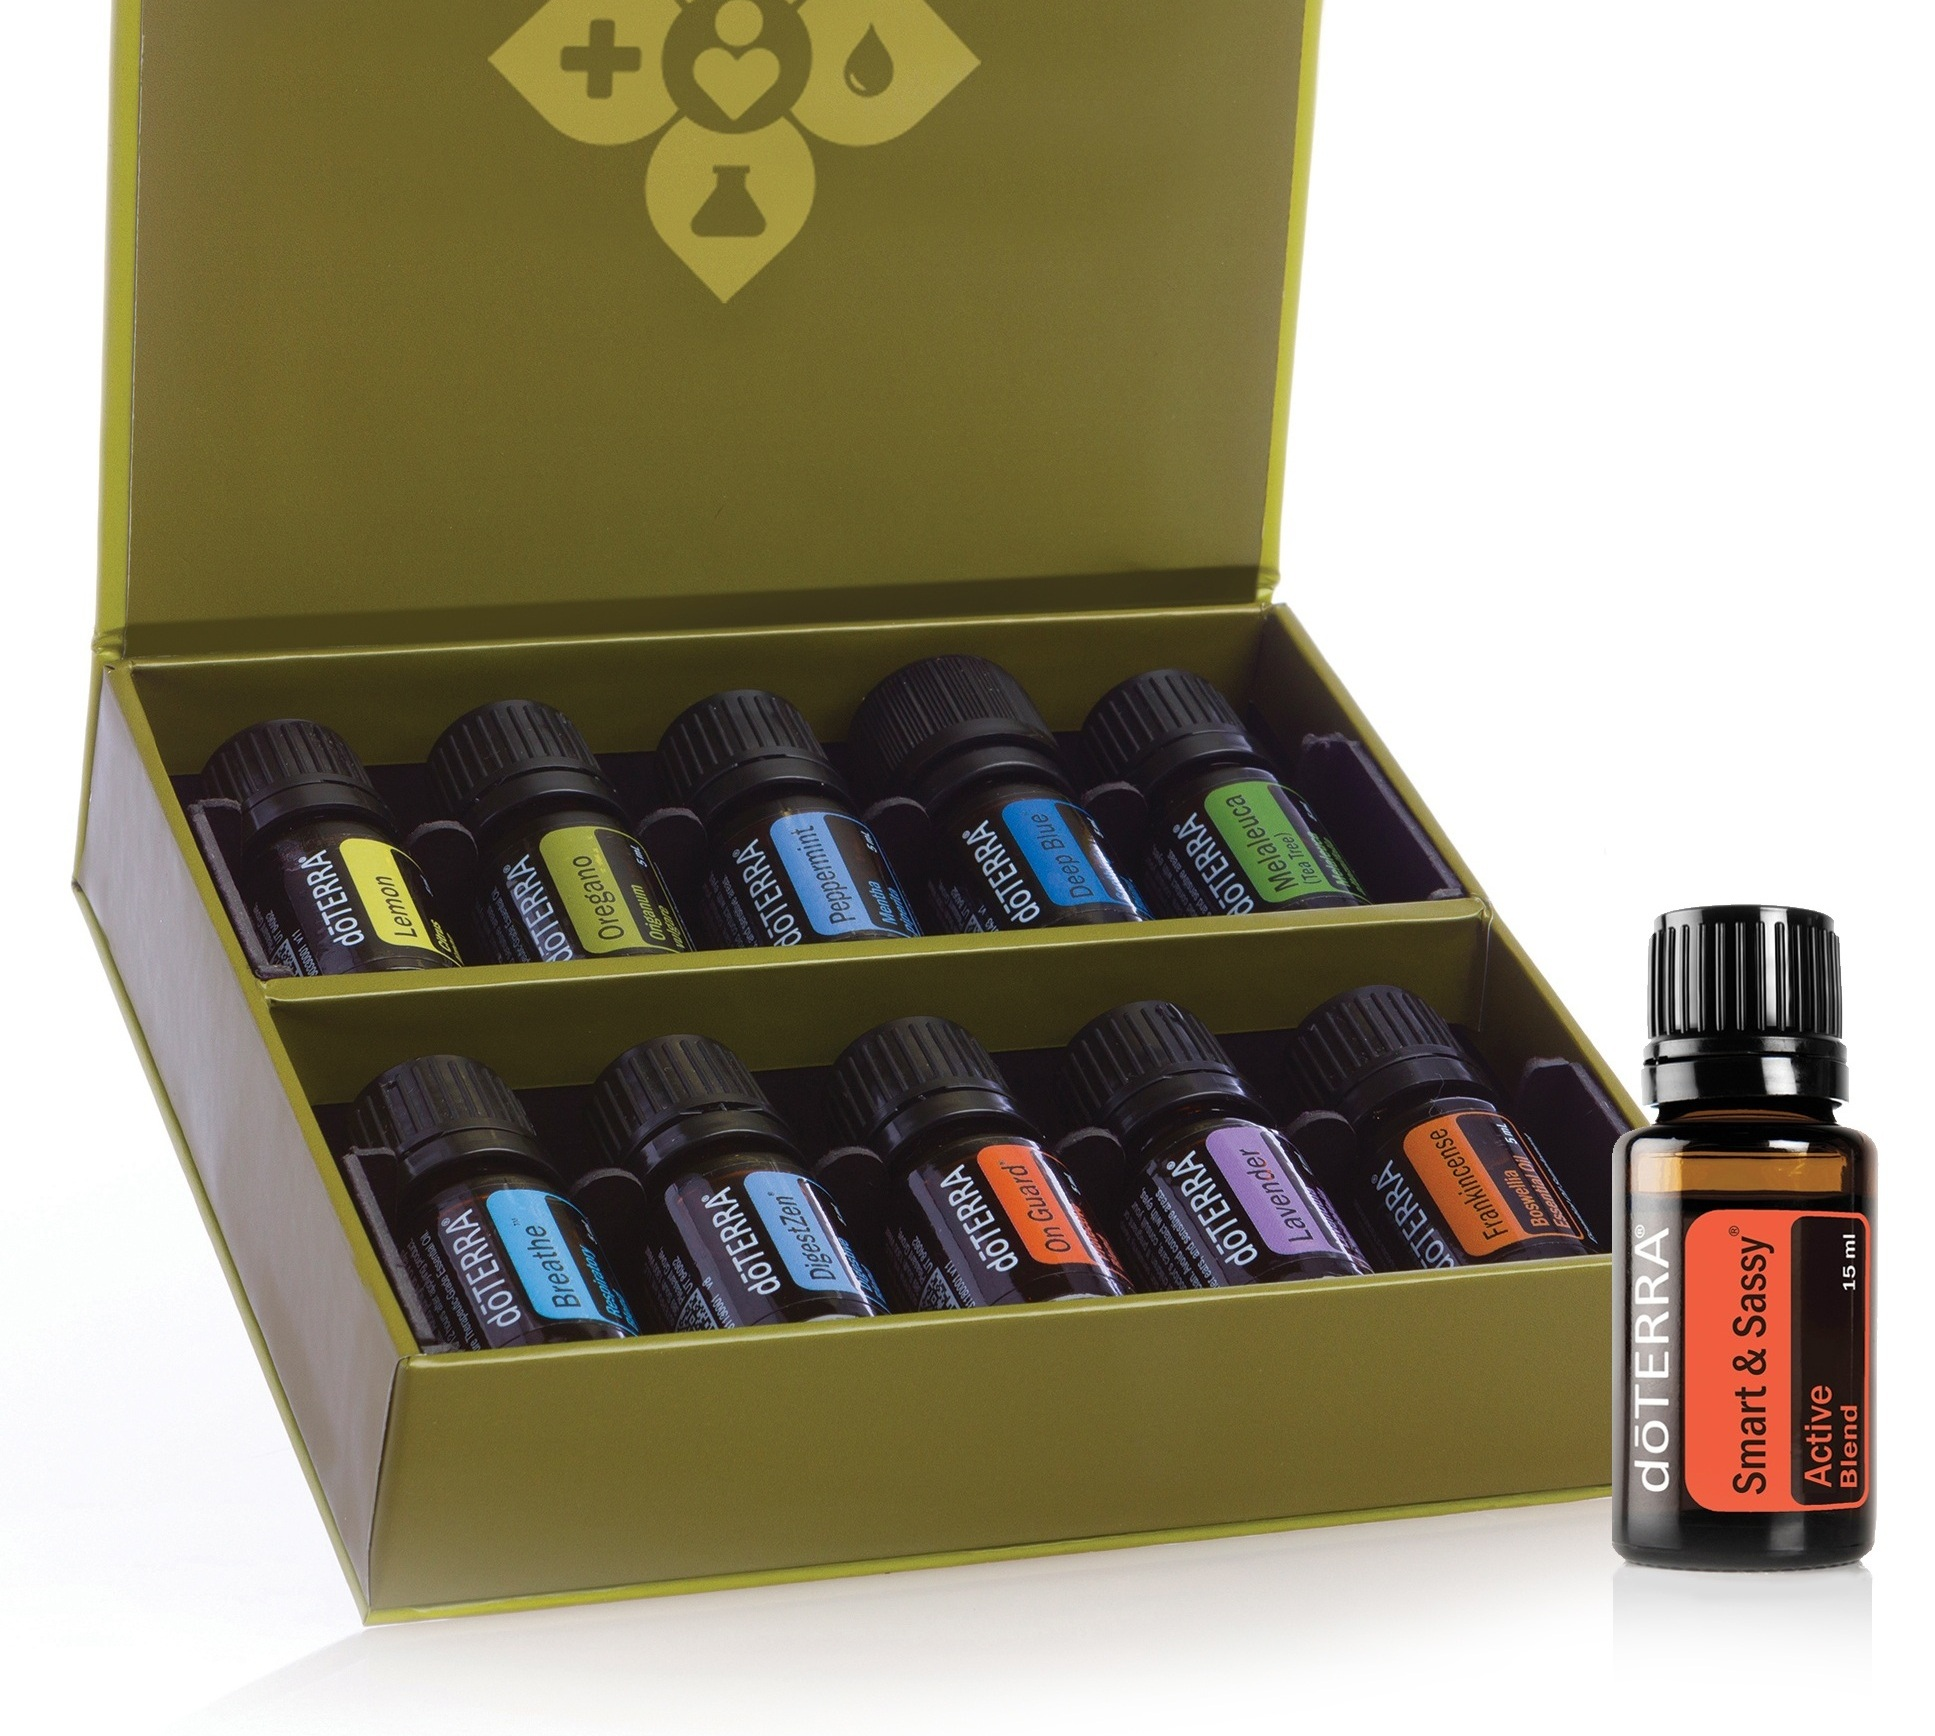 Family Essentials Kit - The 'small bottle' kit. Top 10 essential oils for every home plus the metabolic blend Smart & Sassy.$174